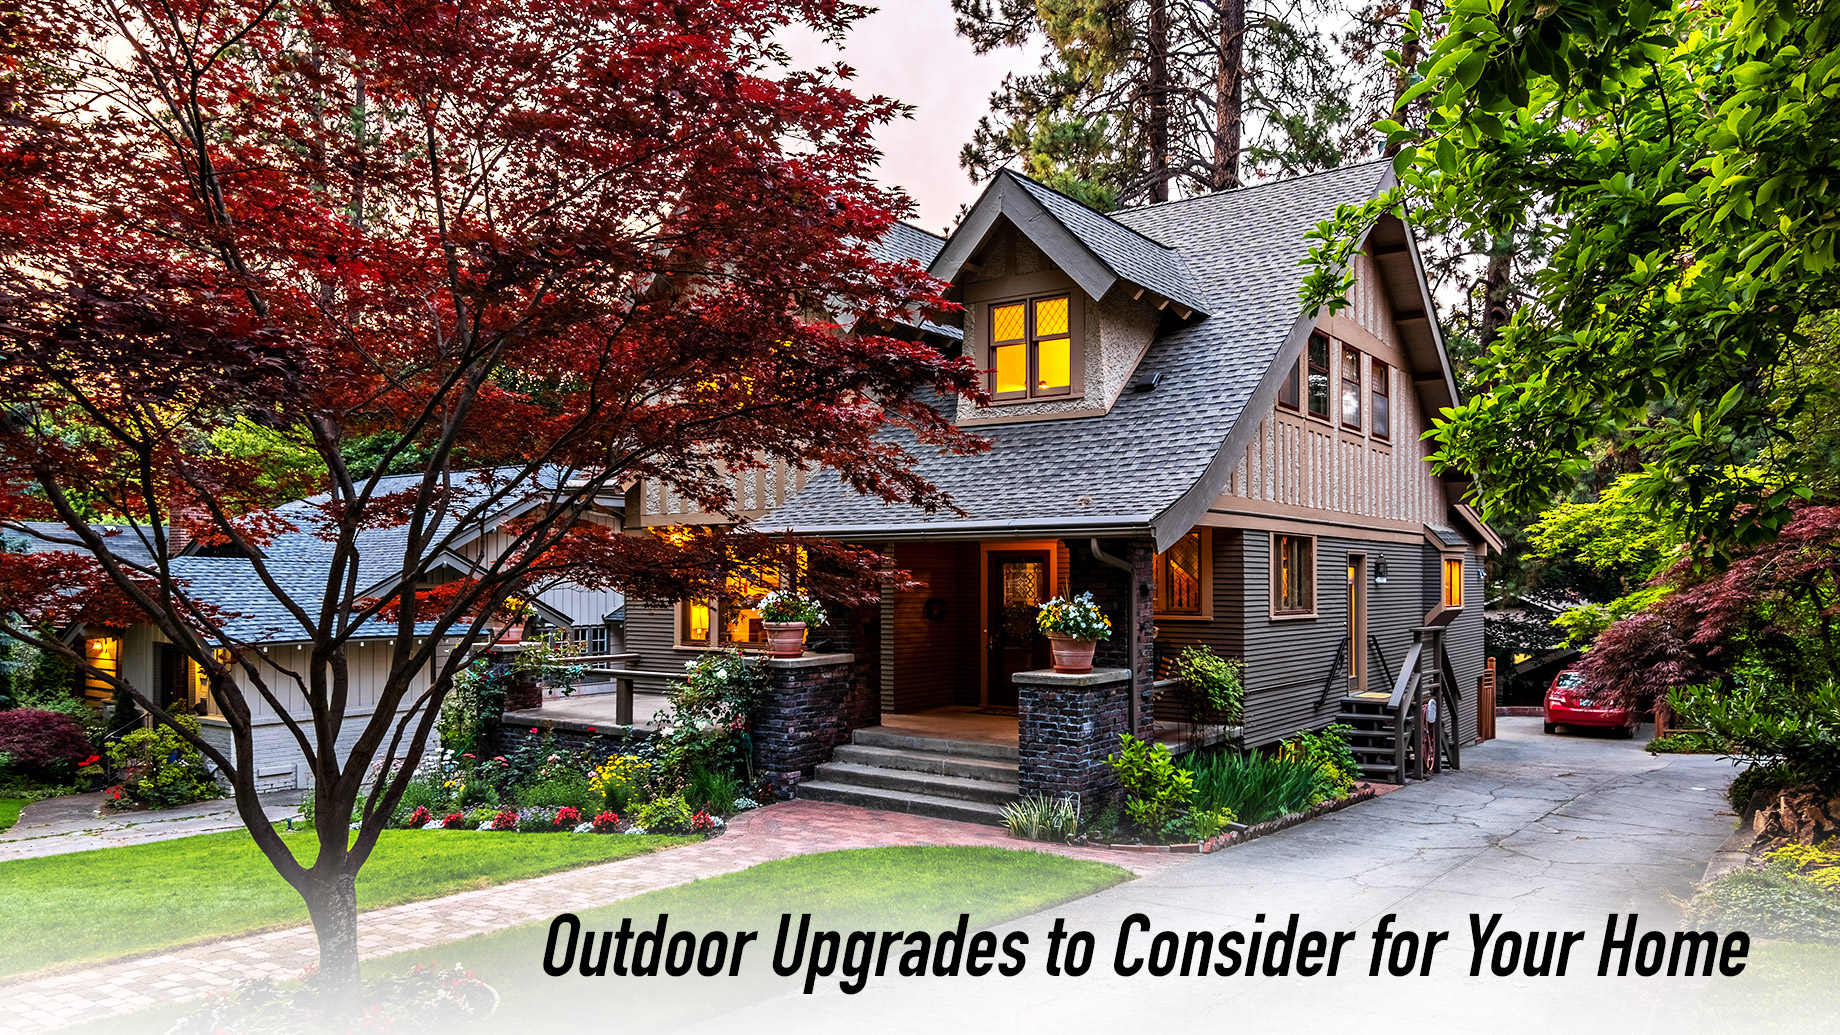 Outdoor Upgrades to Consider for Your Home